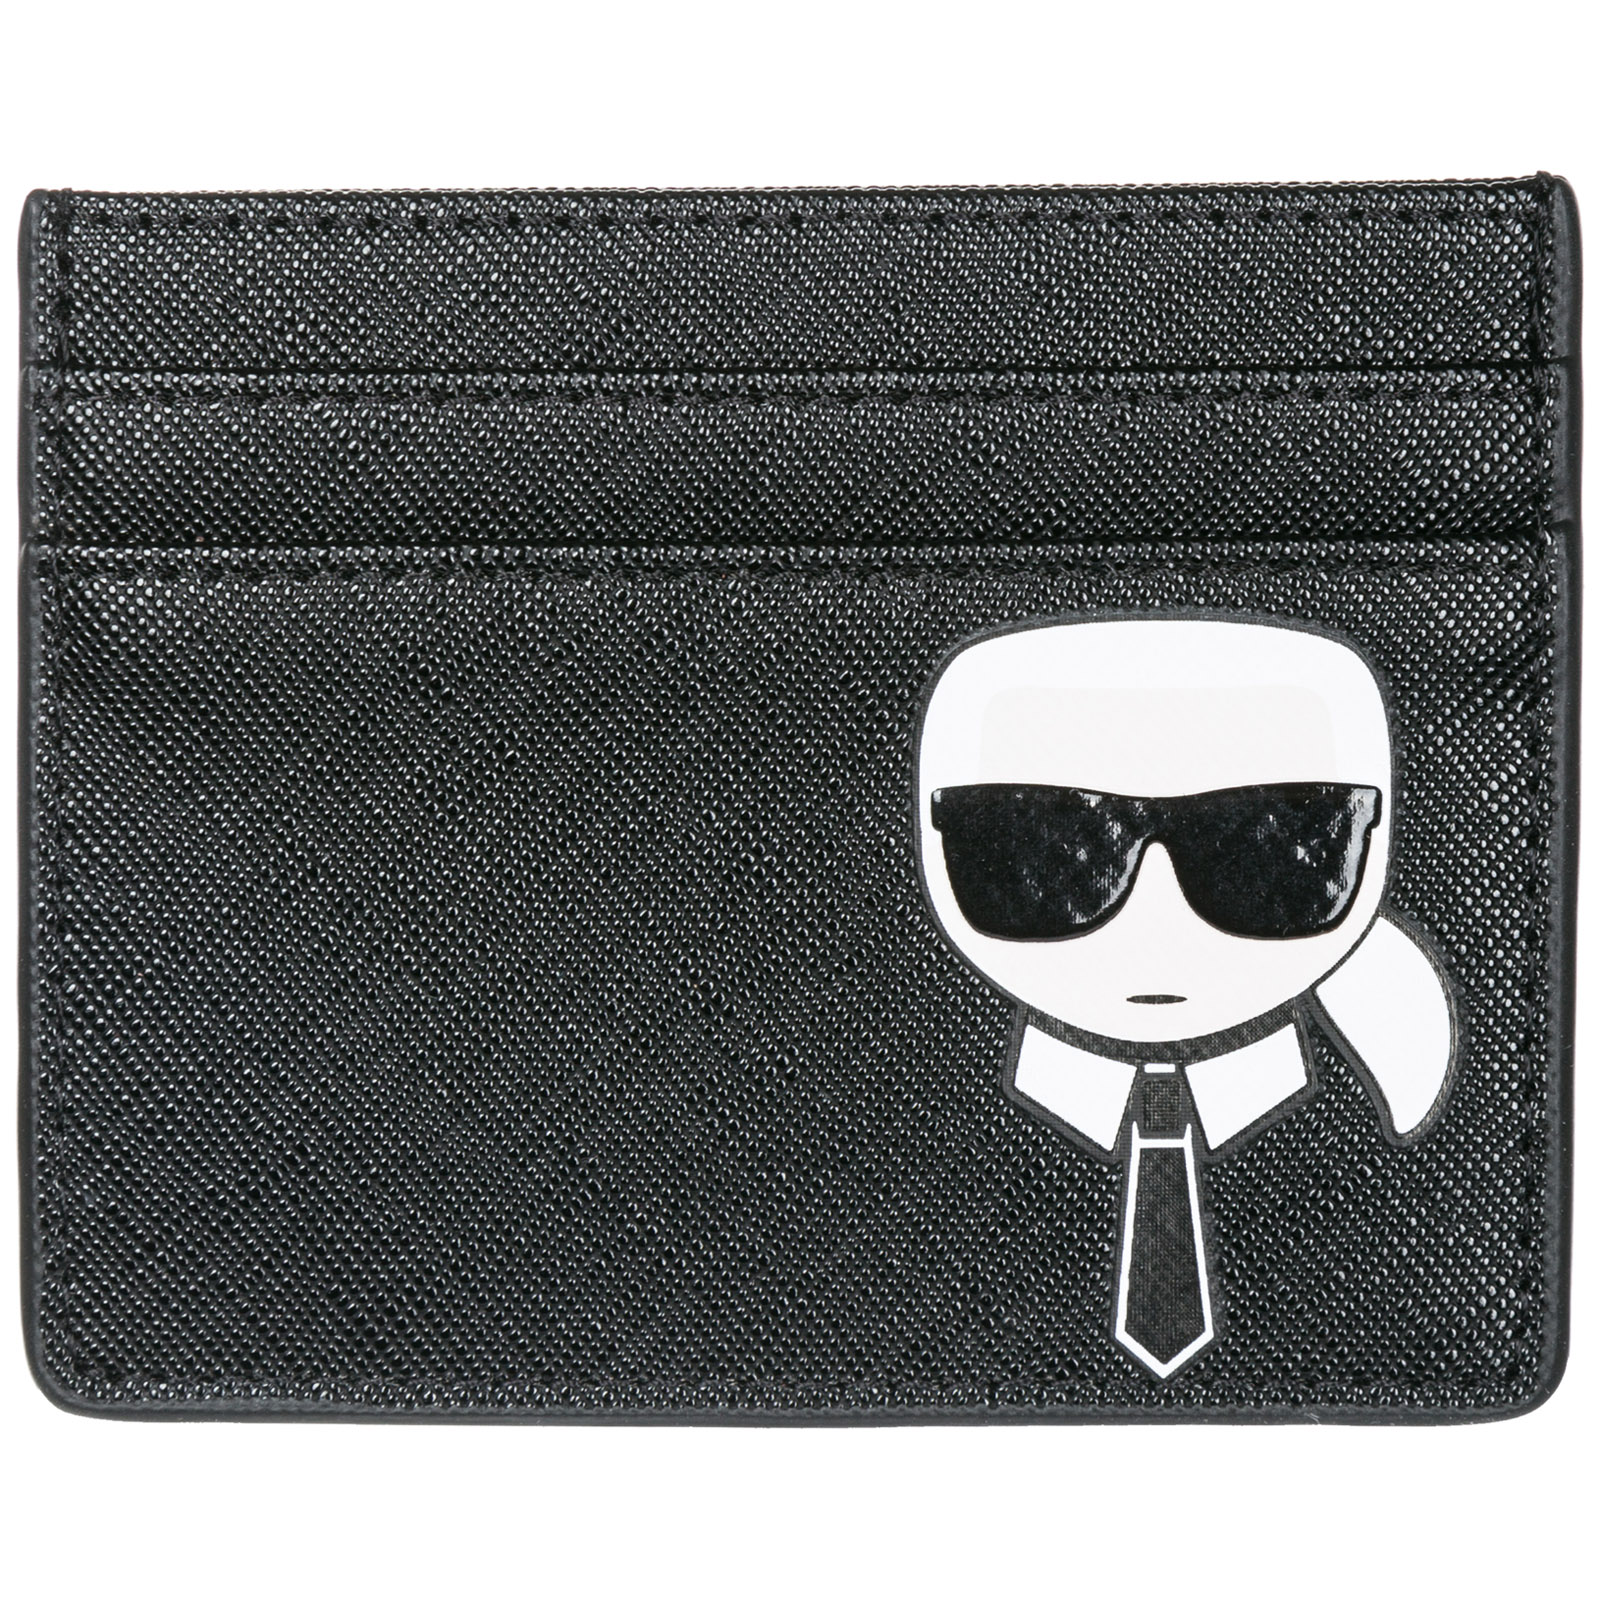 Women's credit card case holder wallet k/ikonik